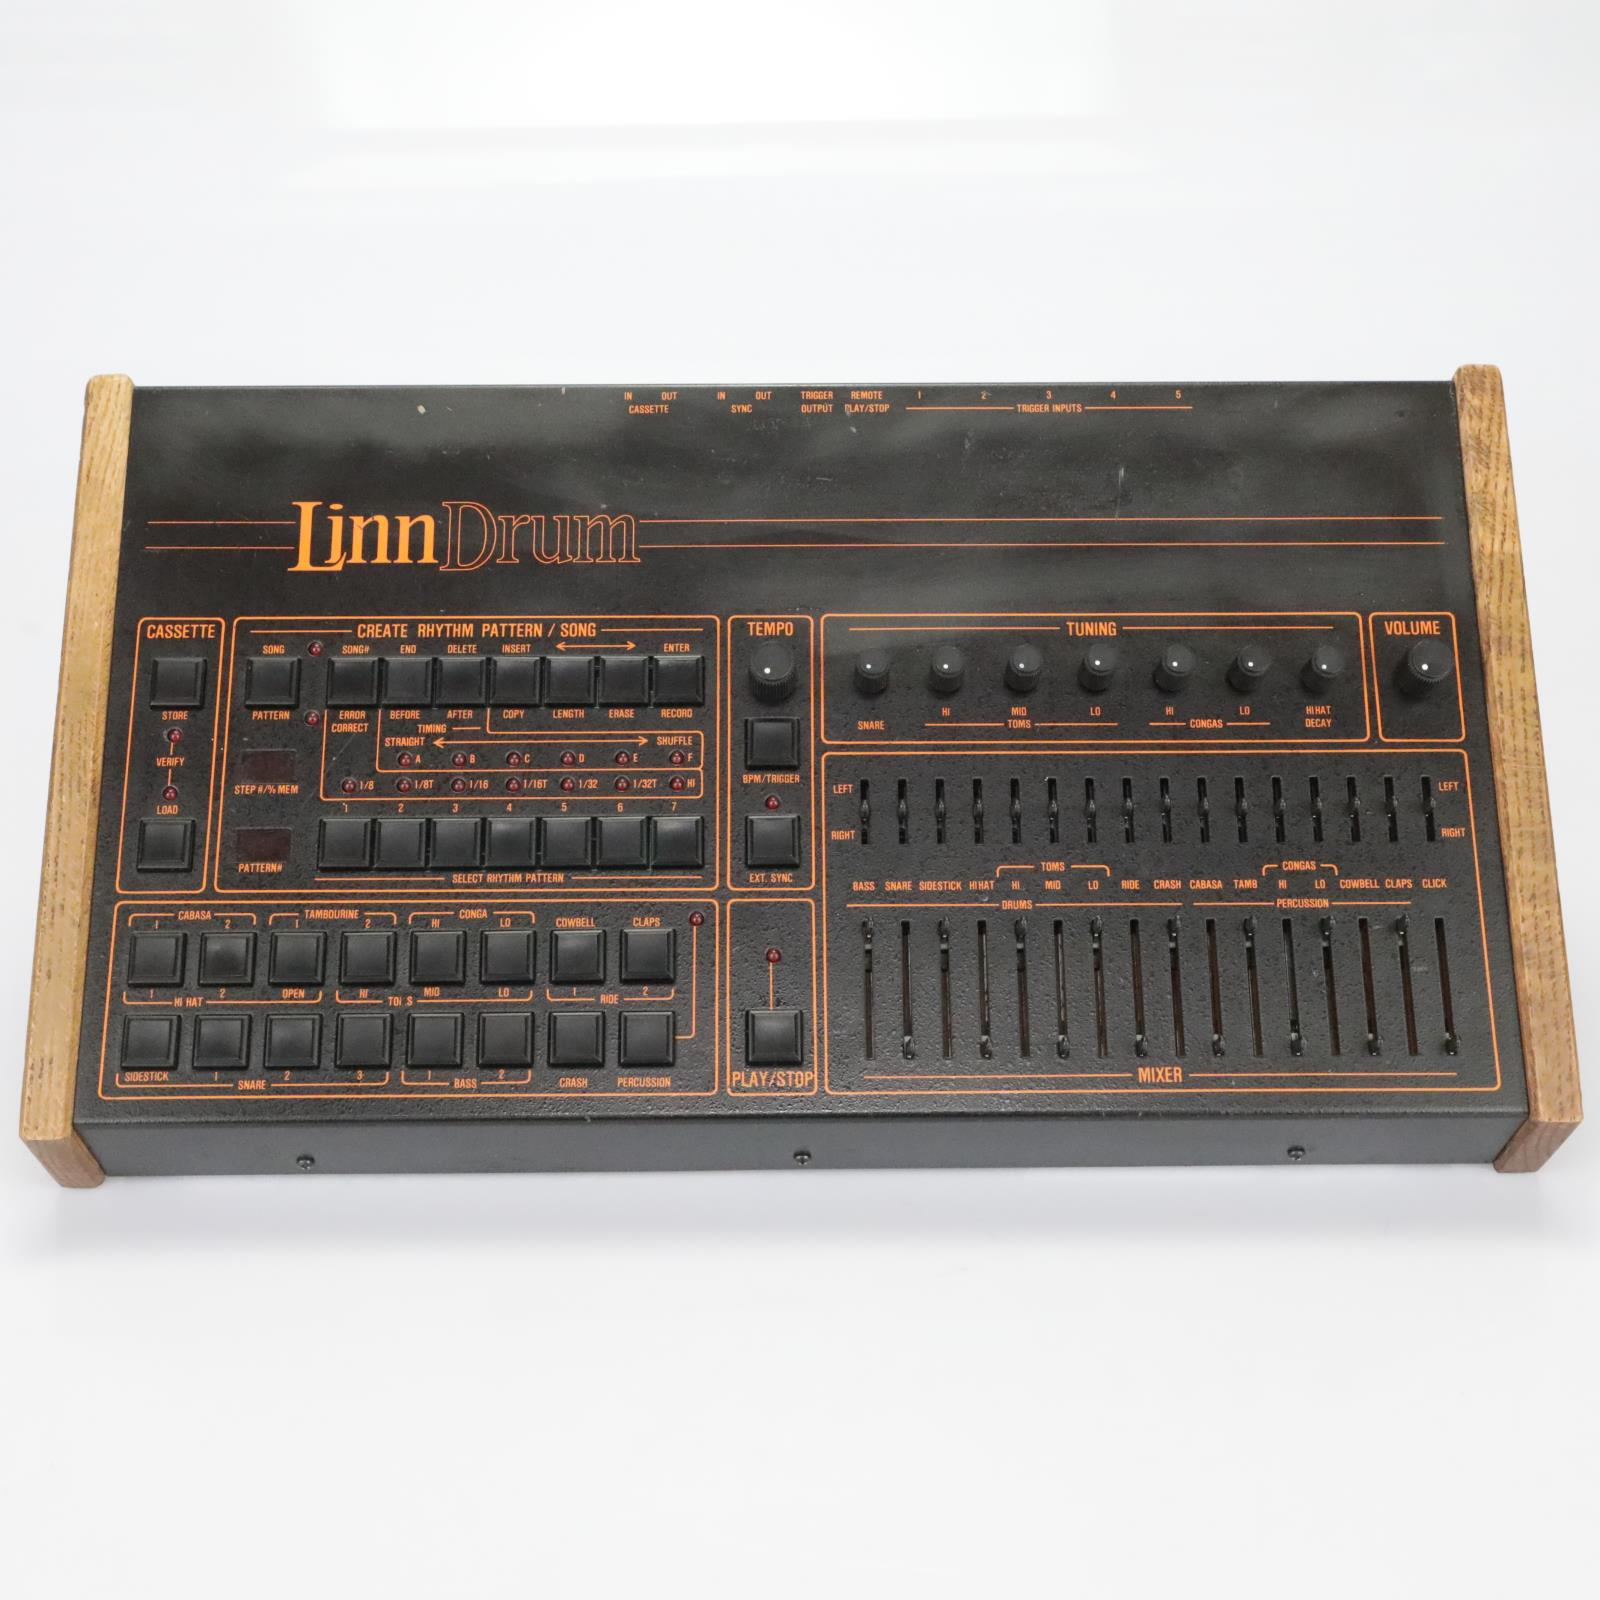 "Linn Electronics LinnDrum ""LM-2"" Drum Machine Forat Serviced #27695"